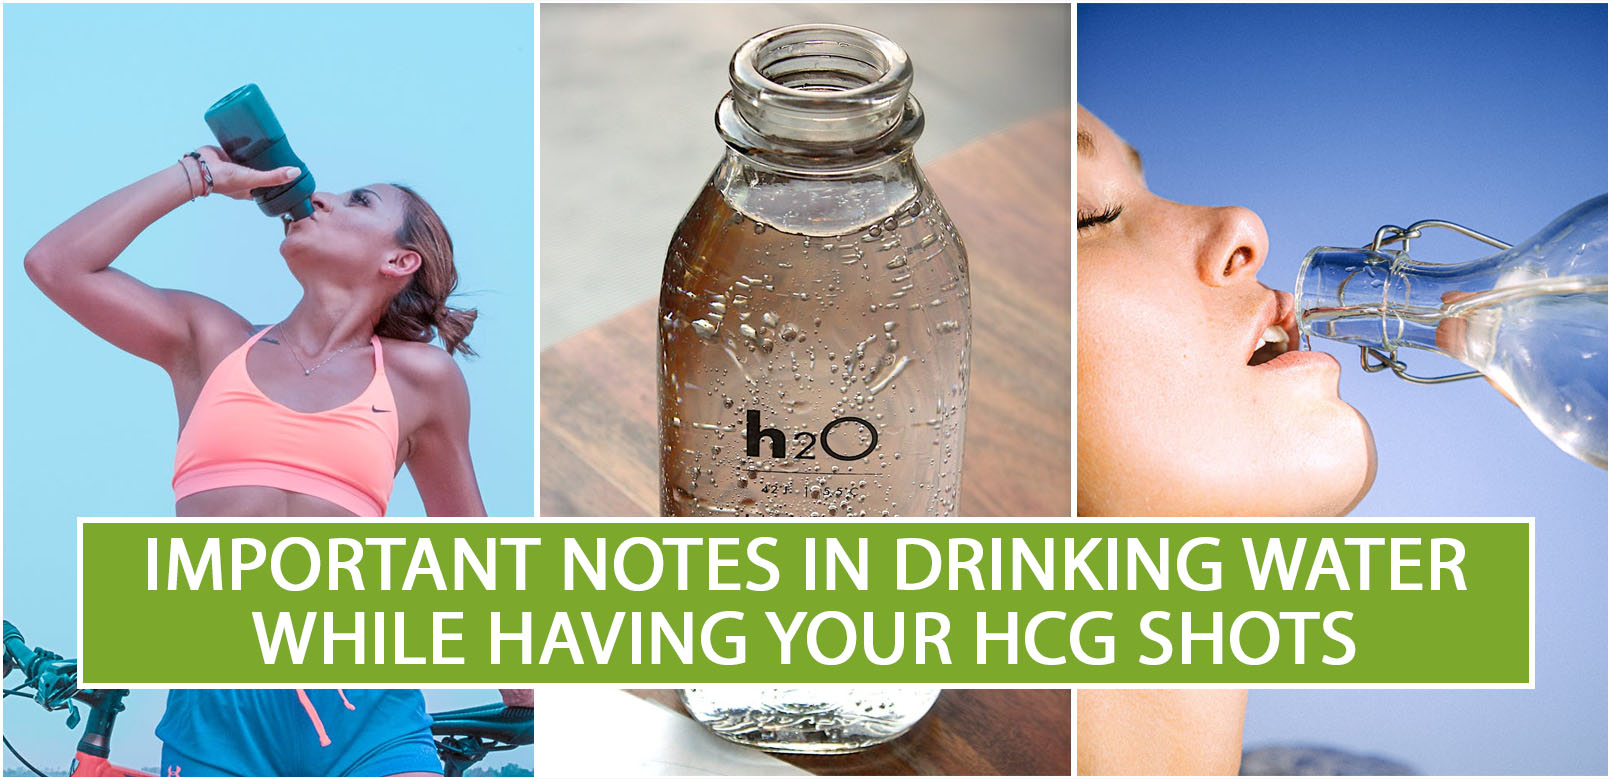 IMPORTANT NOTES IN DRINKING WATER WHILE HAVING YOUR HCG SHOTS